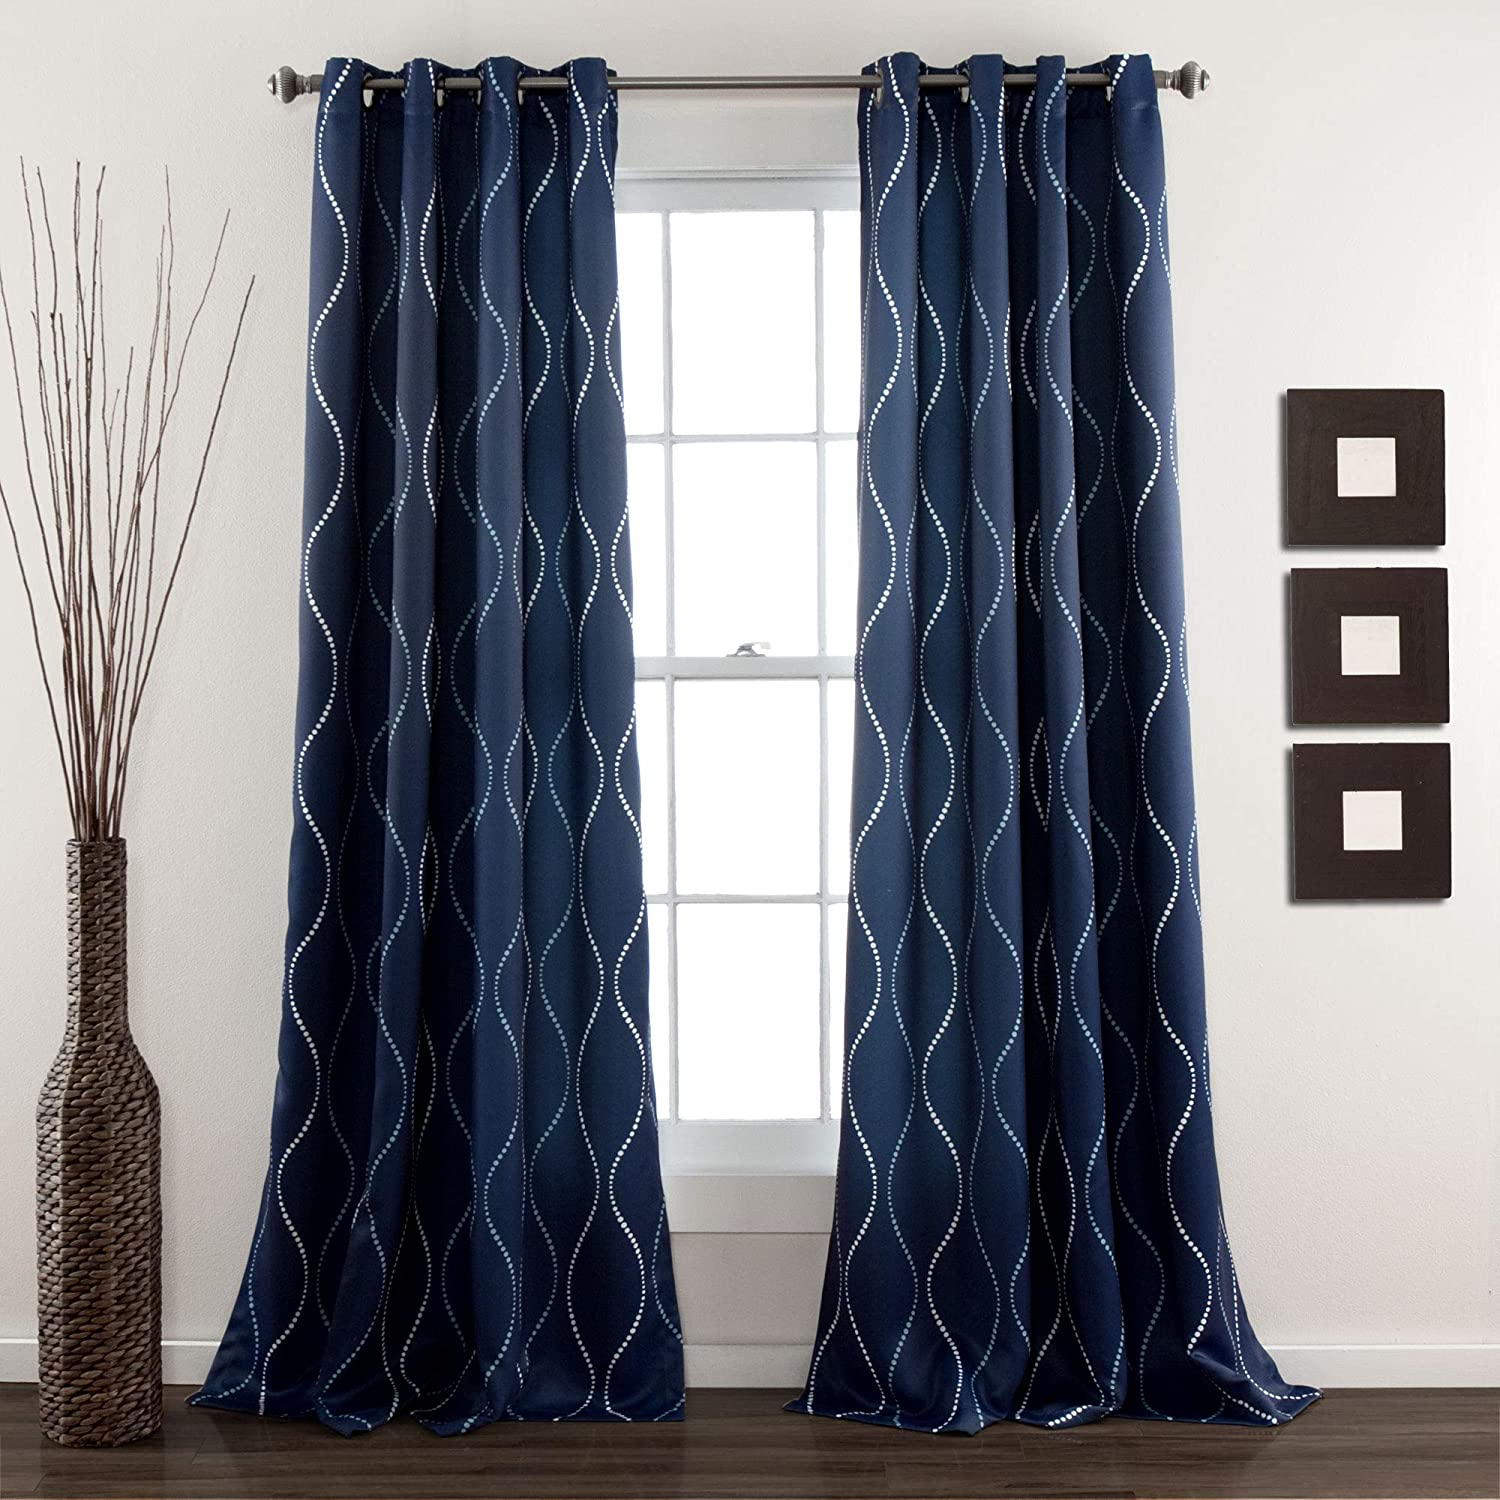 "Lush Decor, Navy Swirl Room Darkening Curtains | Wave Dot Stripe Retro Design Window Panel Set for Living, Dining, Bedroom (Pair), 84"" x 52"